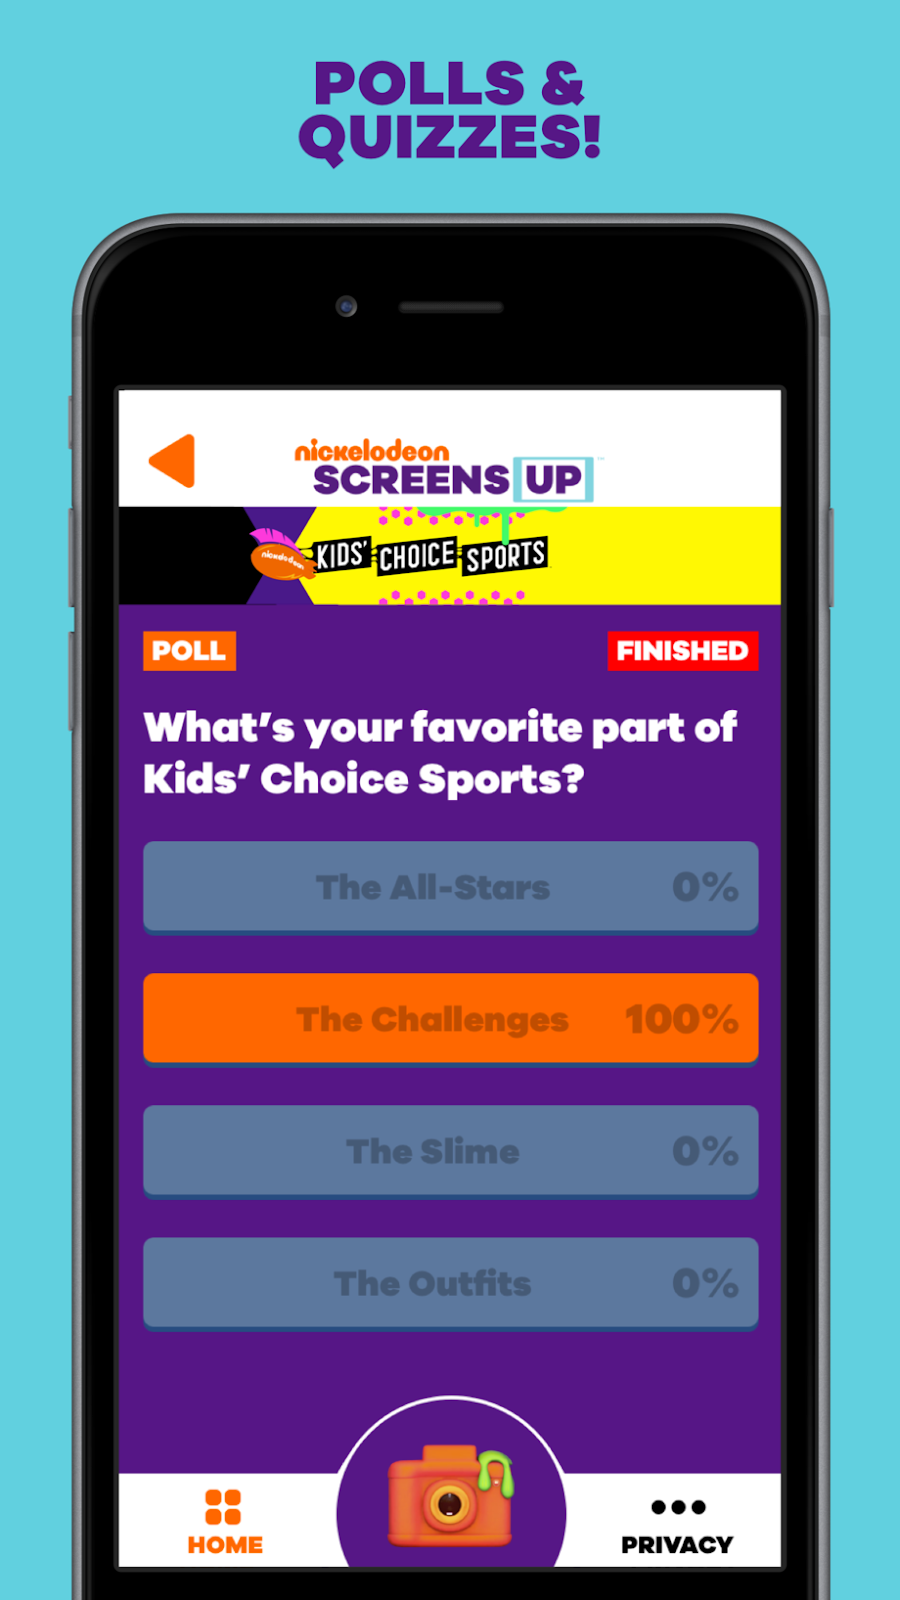 Nick Do Not Touch Button App : touch, button, NickALive!:, Nickelodeon, Launches, 'Screens